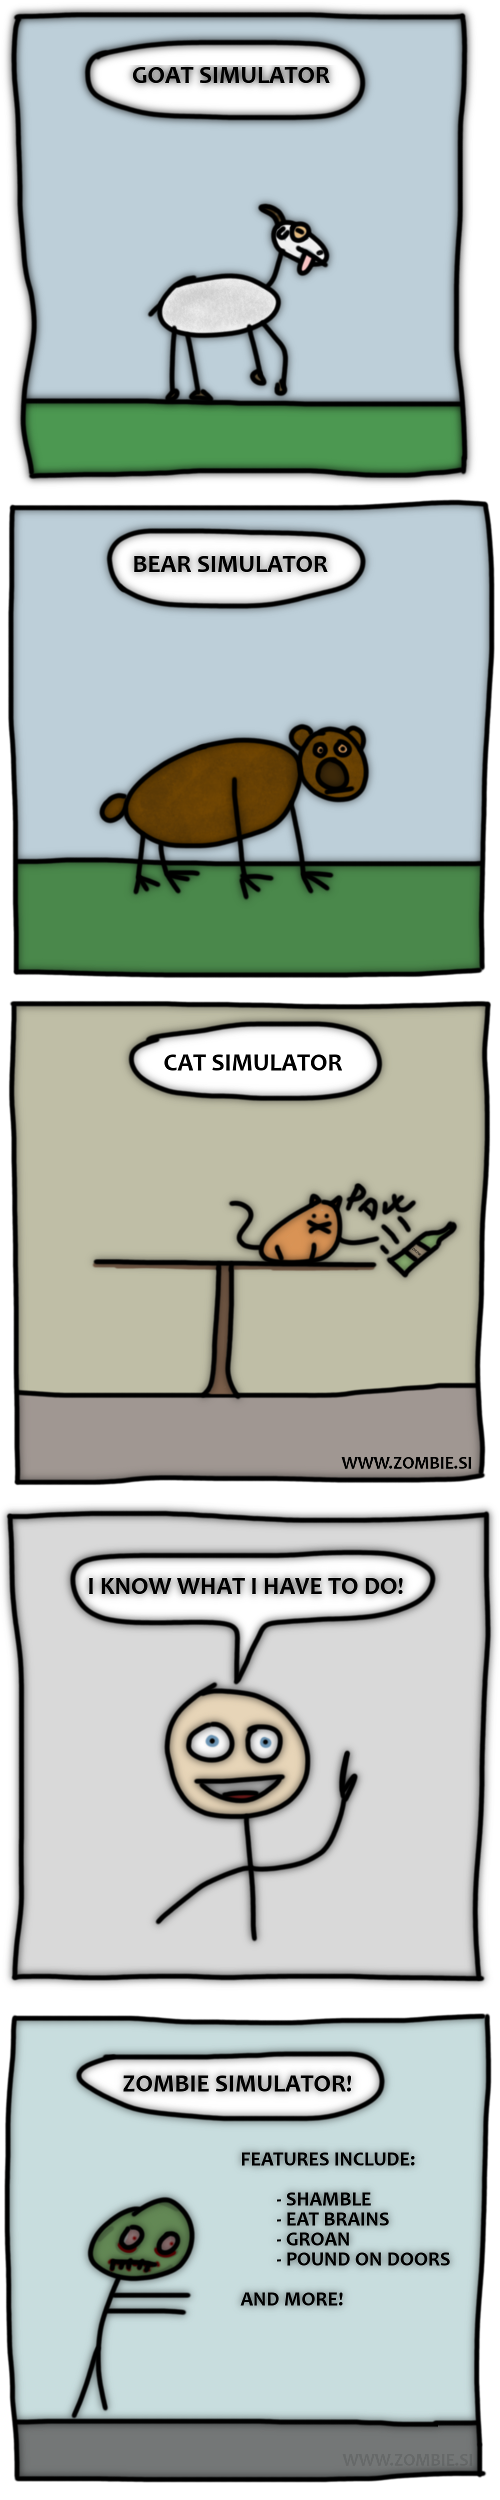 Simulator madness!